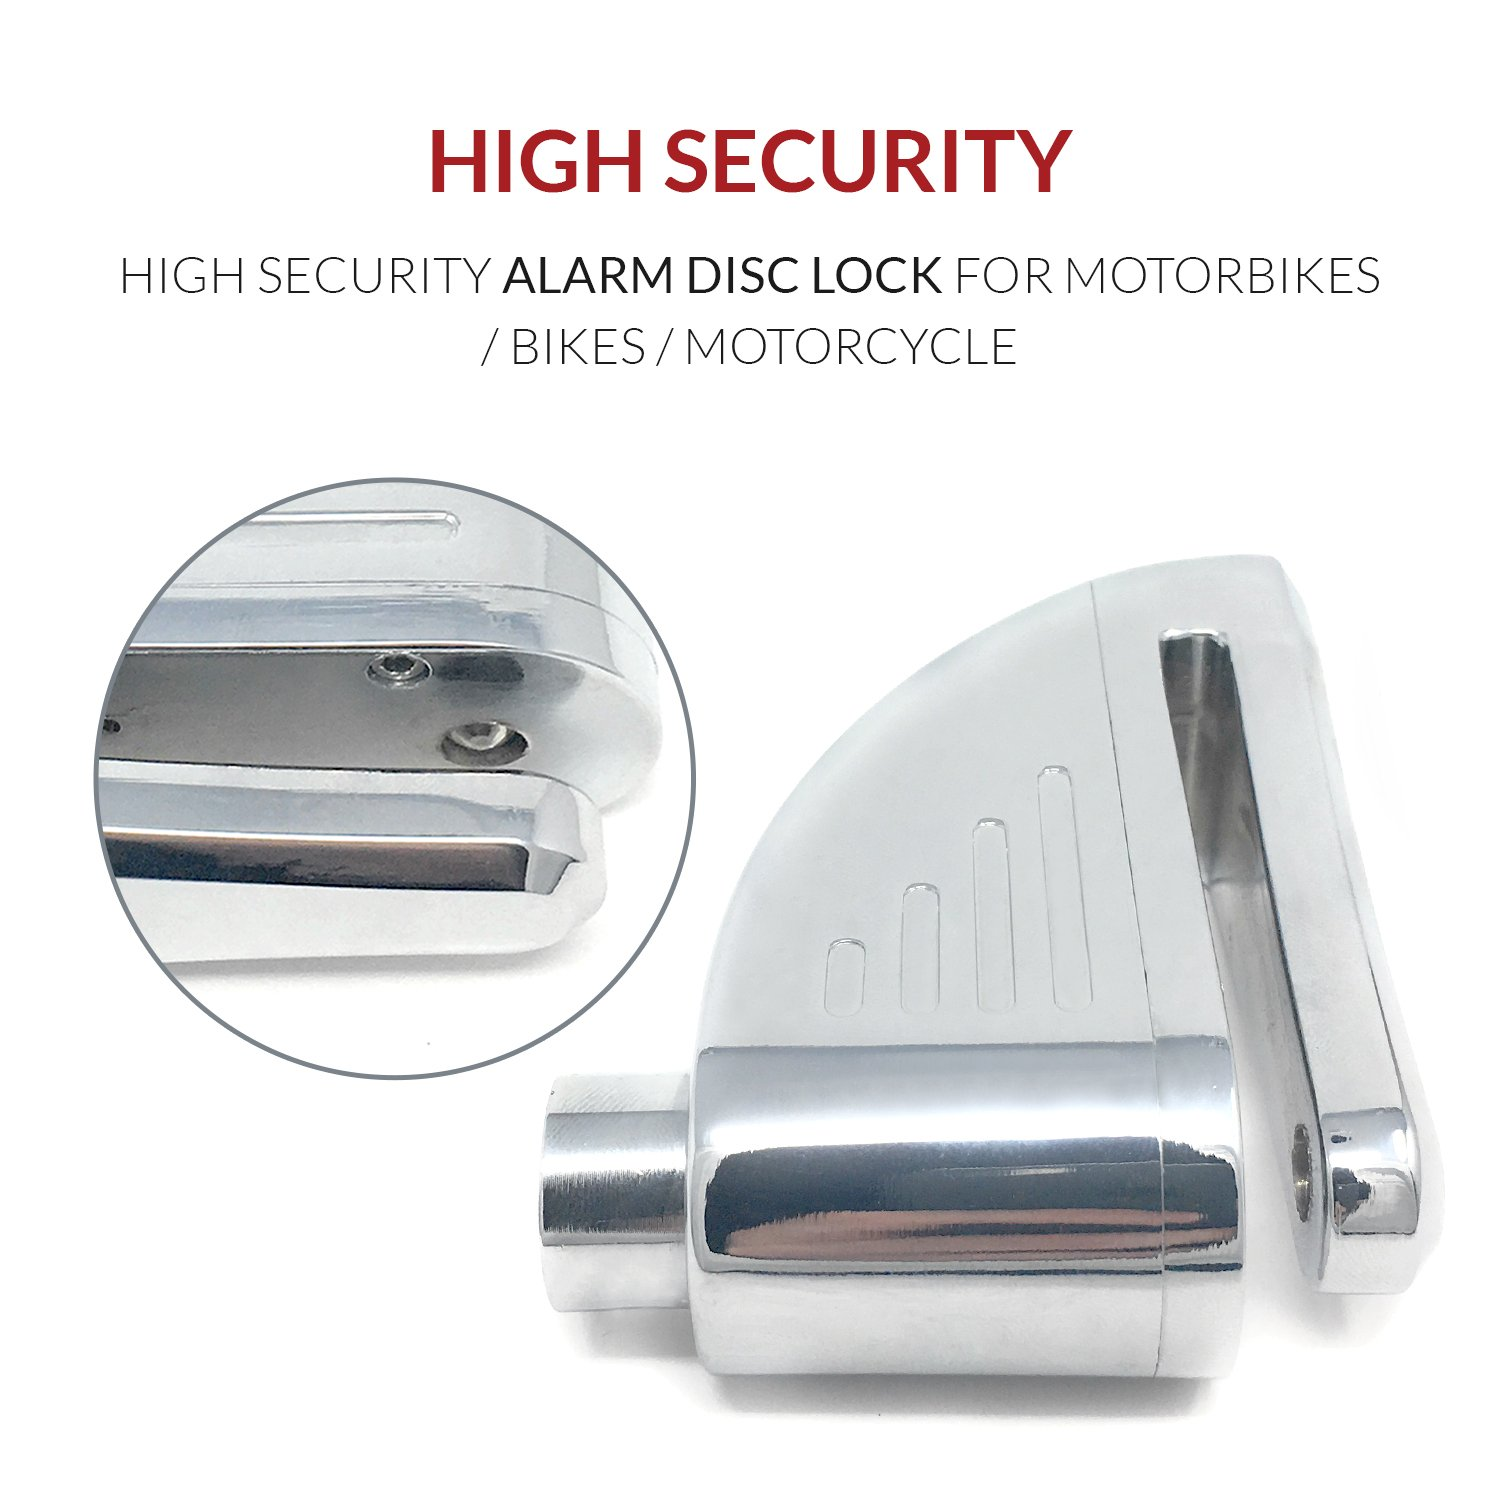 Motorbike Disc Lock Alarm With Built In 110 db Alarm System Siren Our Disc Brake Lock Alarm comes with Anti-Theft Security and works with Motorcycles and Mopeds Waterproof and Compact.